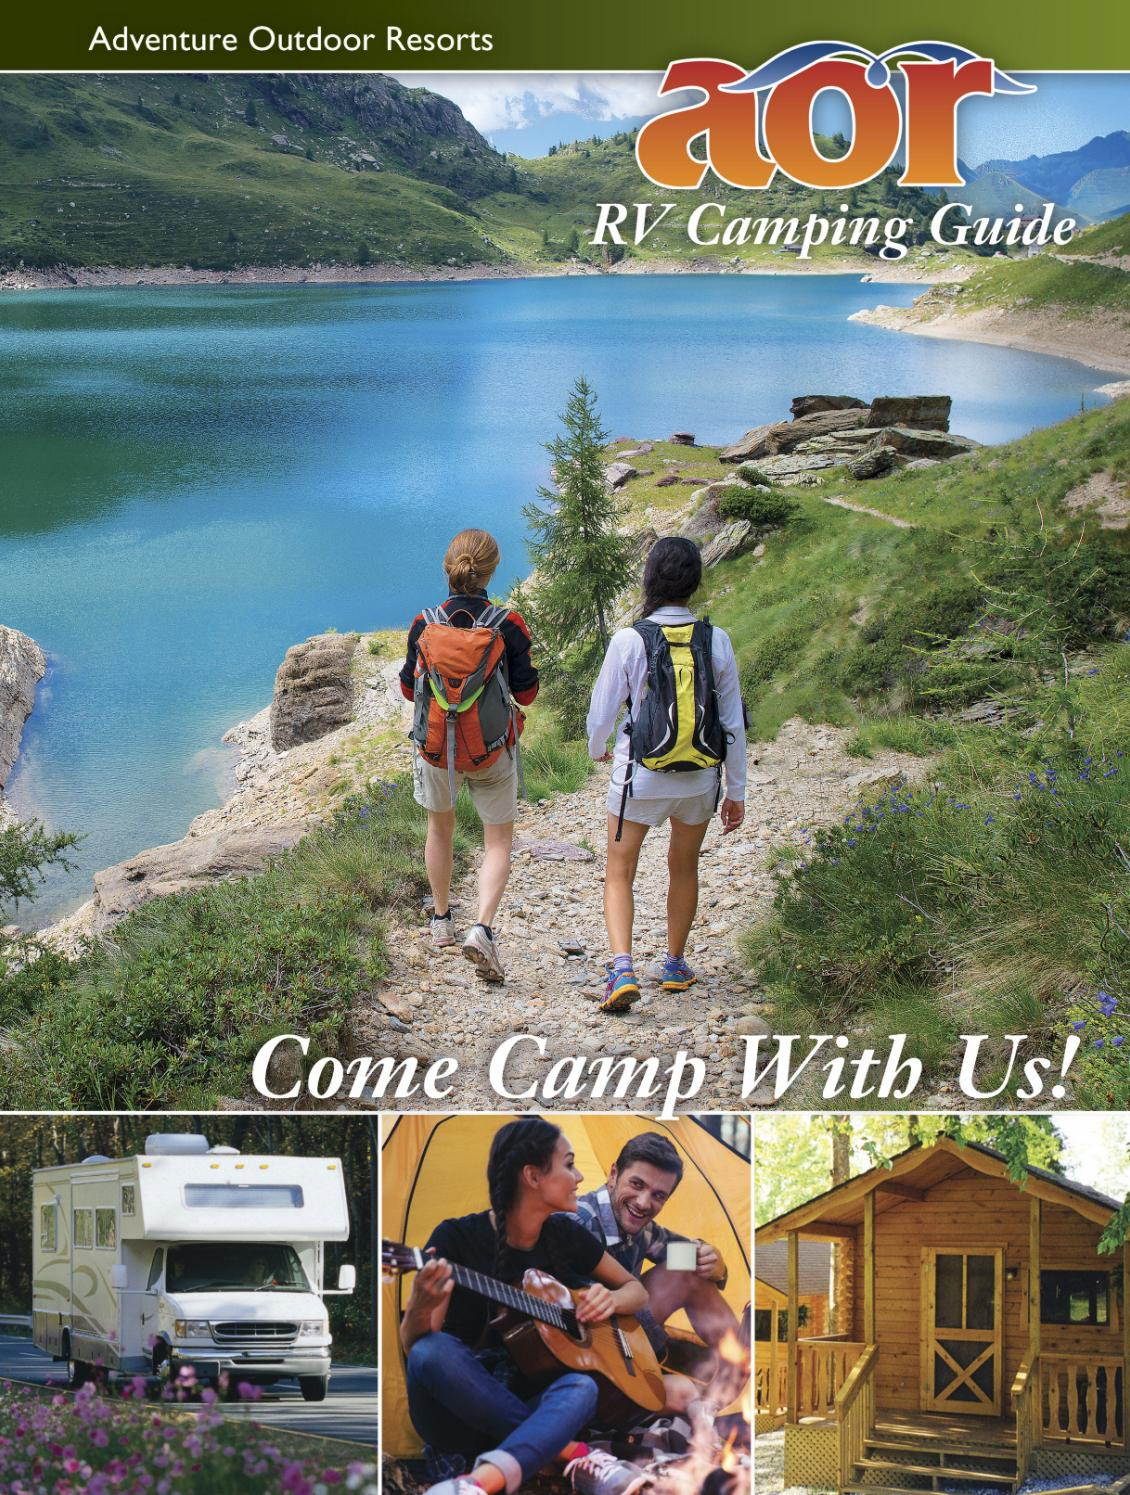 AOR Camping Guide 2018 by Adventure Outdoor Resorts - issuu